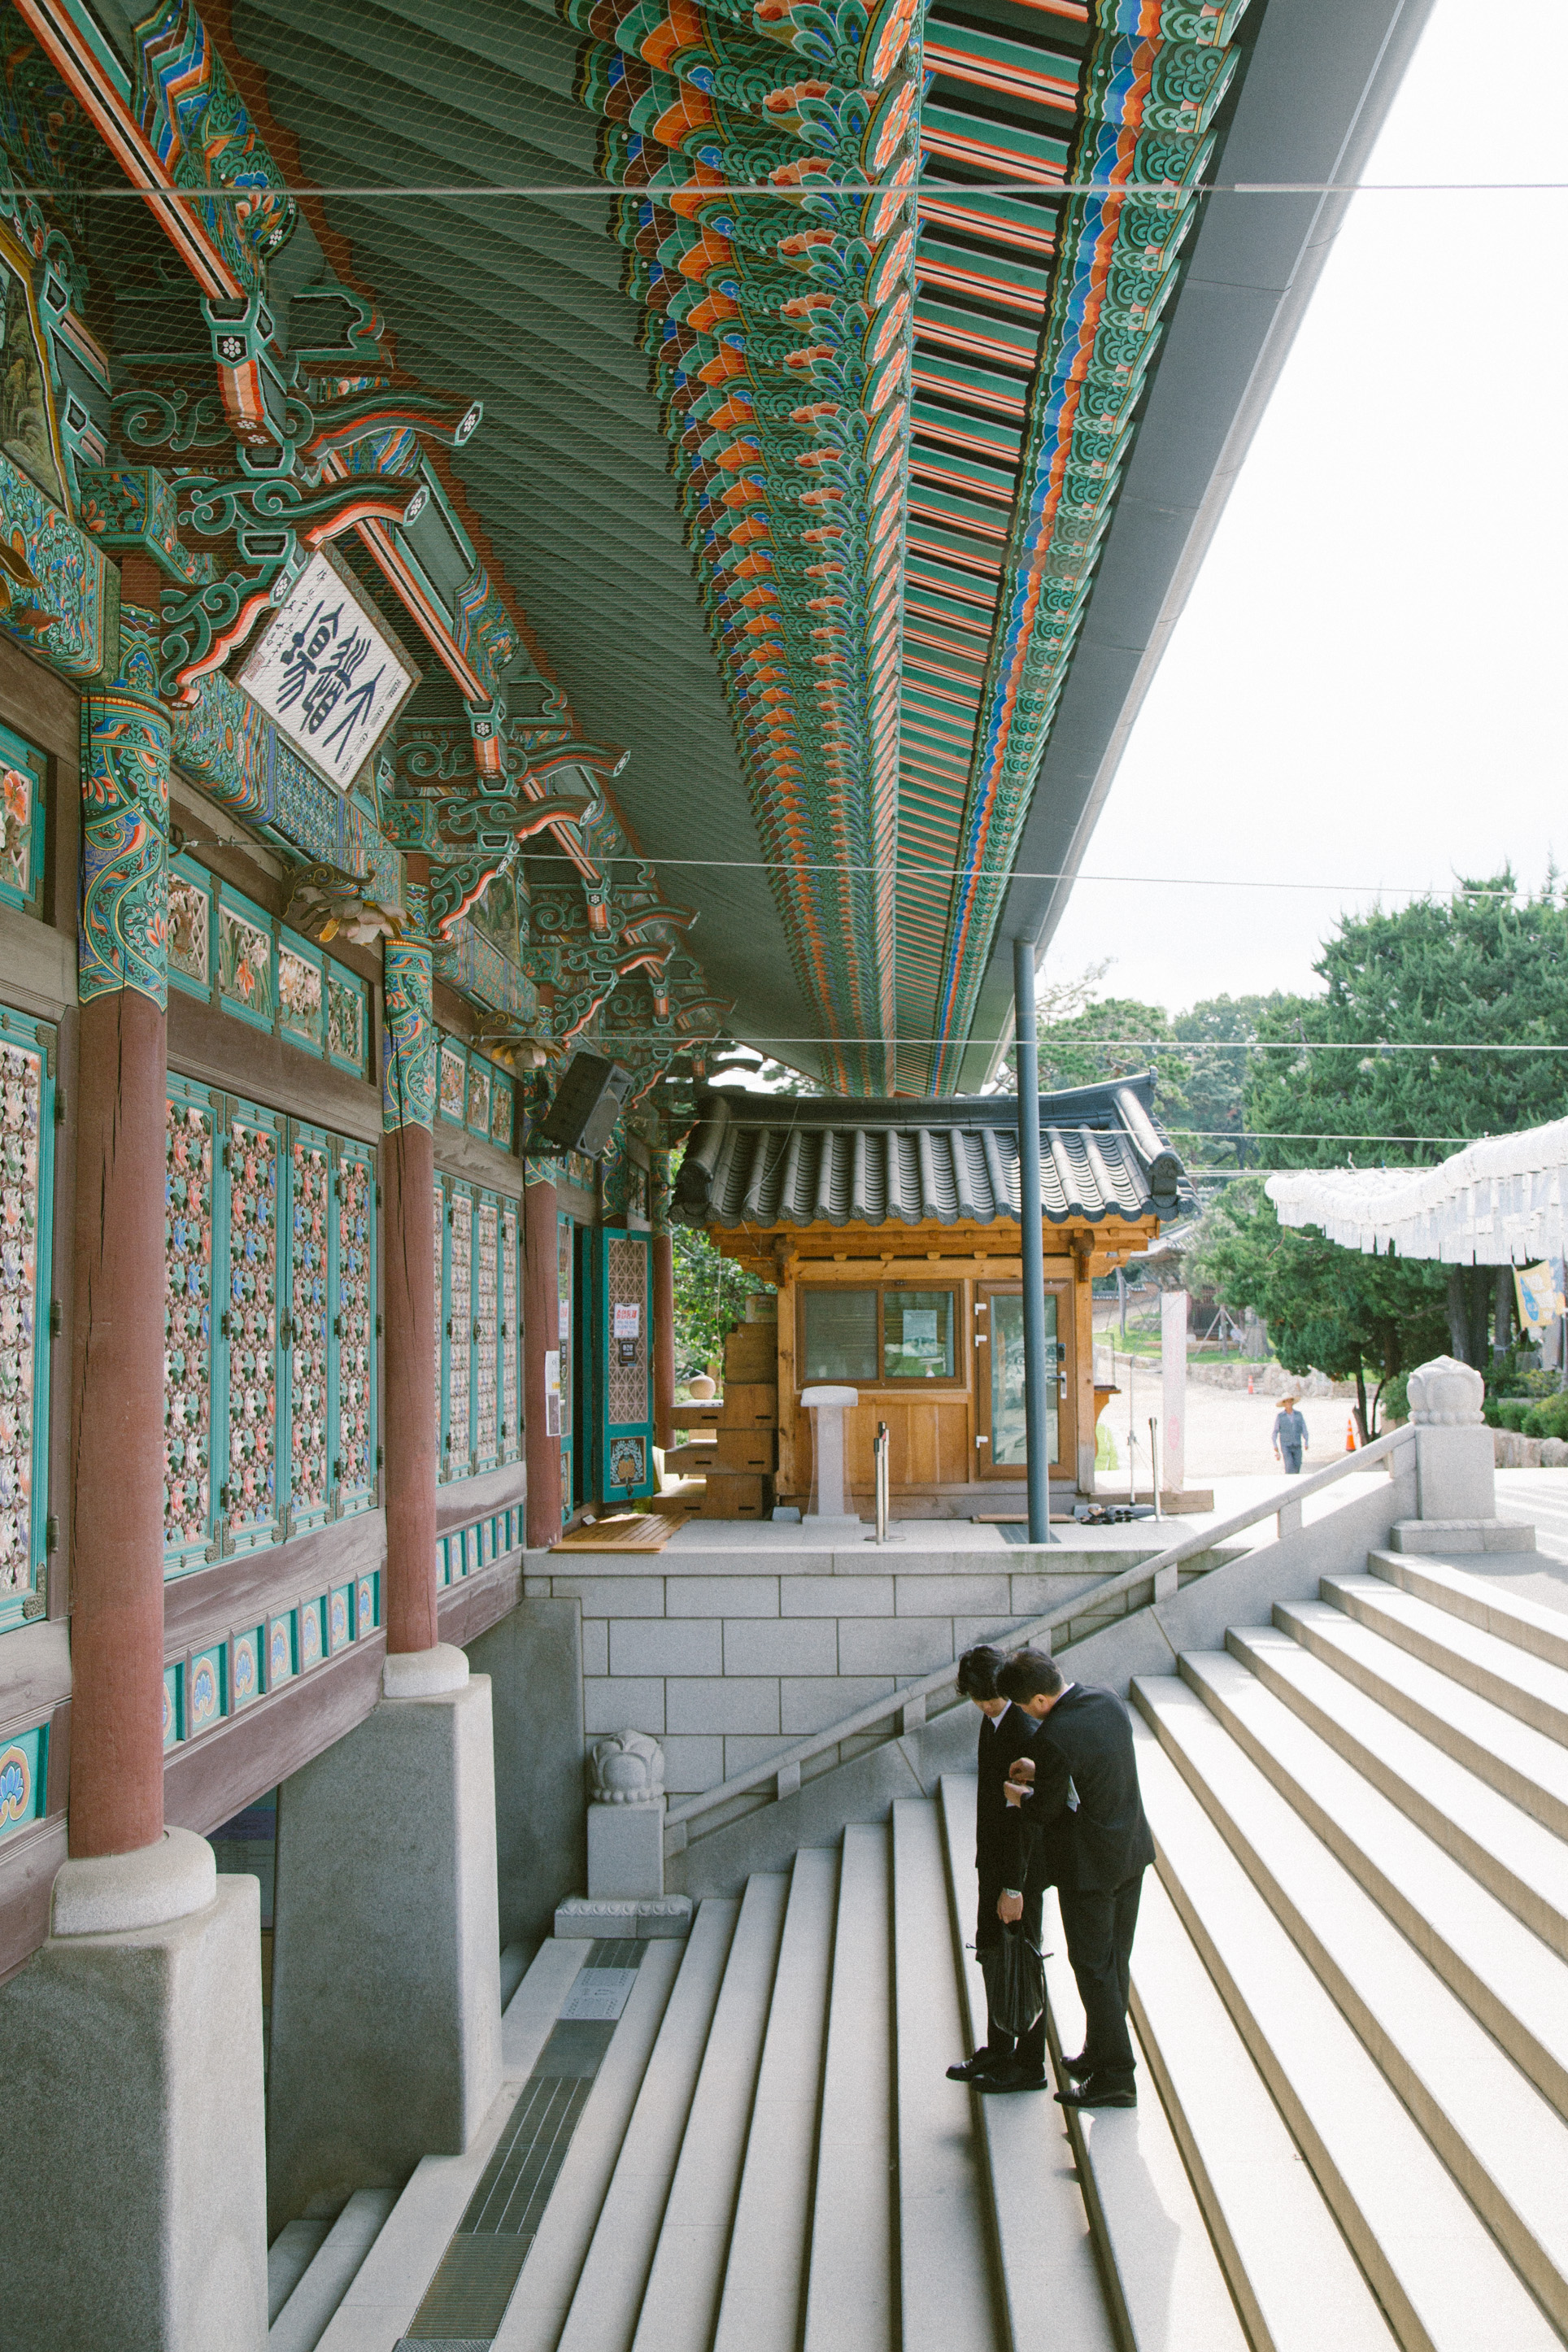 Bongeunsa temple - Bongeunsa is a Buddhist temple founded in 794 during the Silla, one of the Three Kingdoms of Korea period ( back about 1,200 years ).